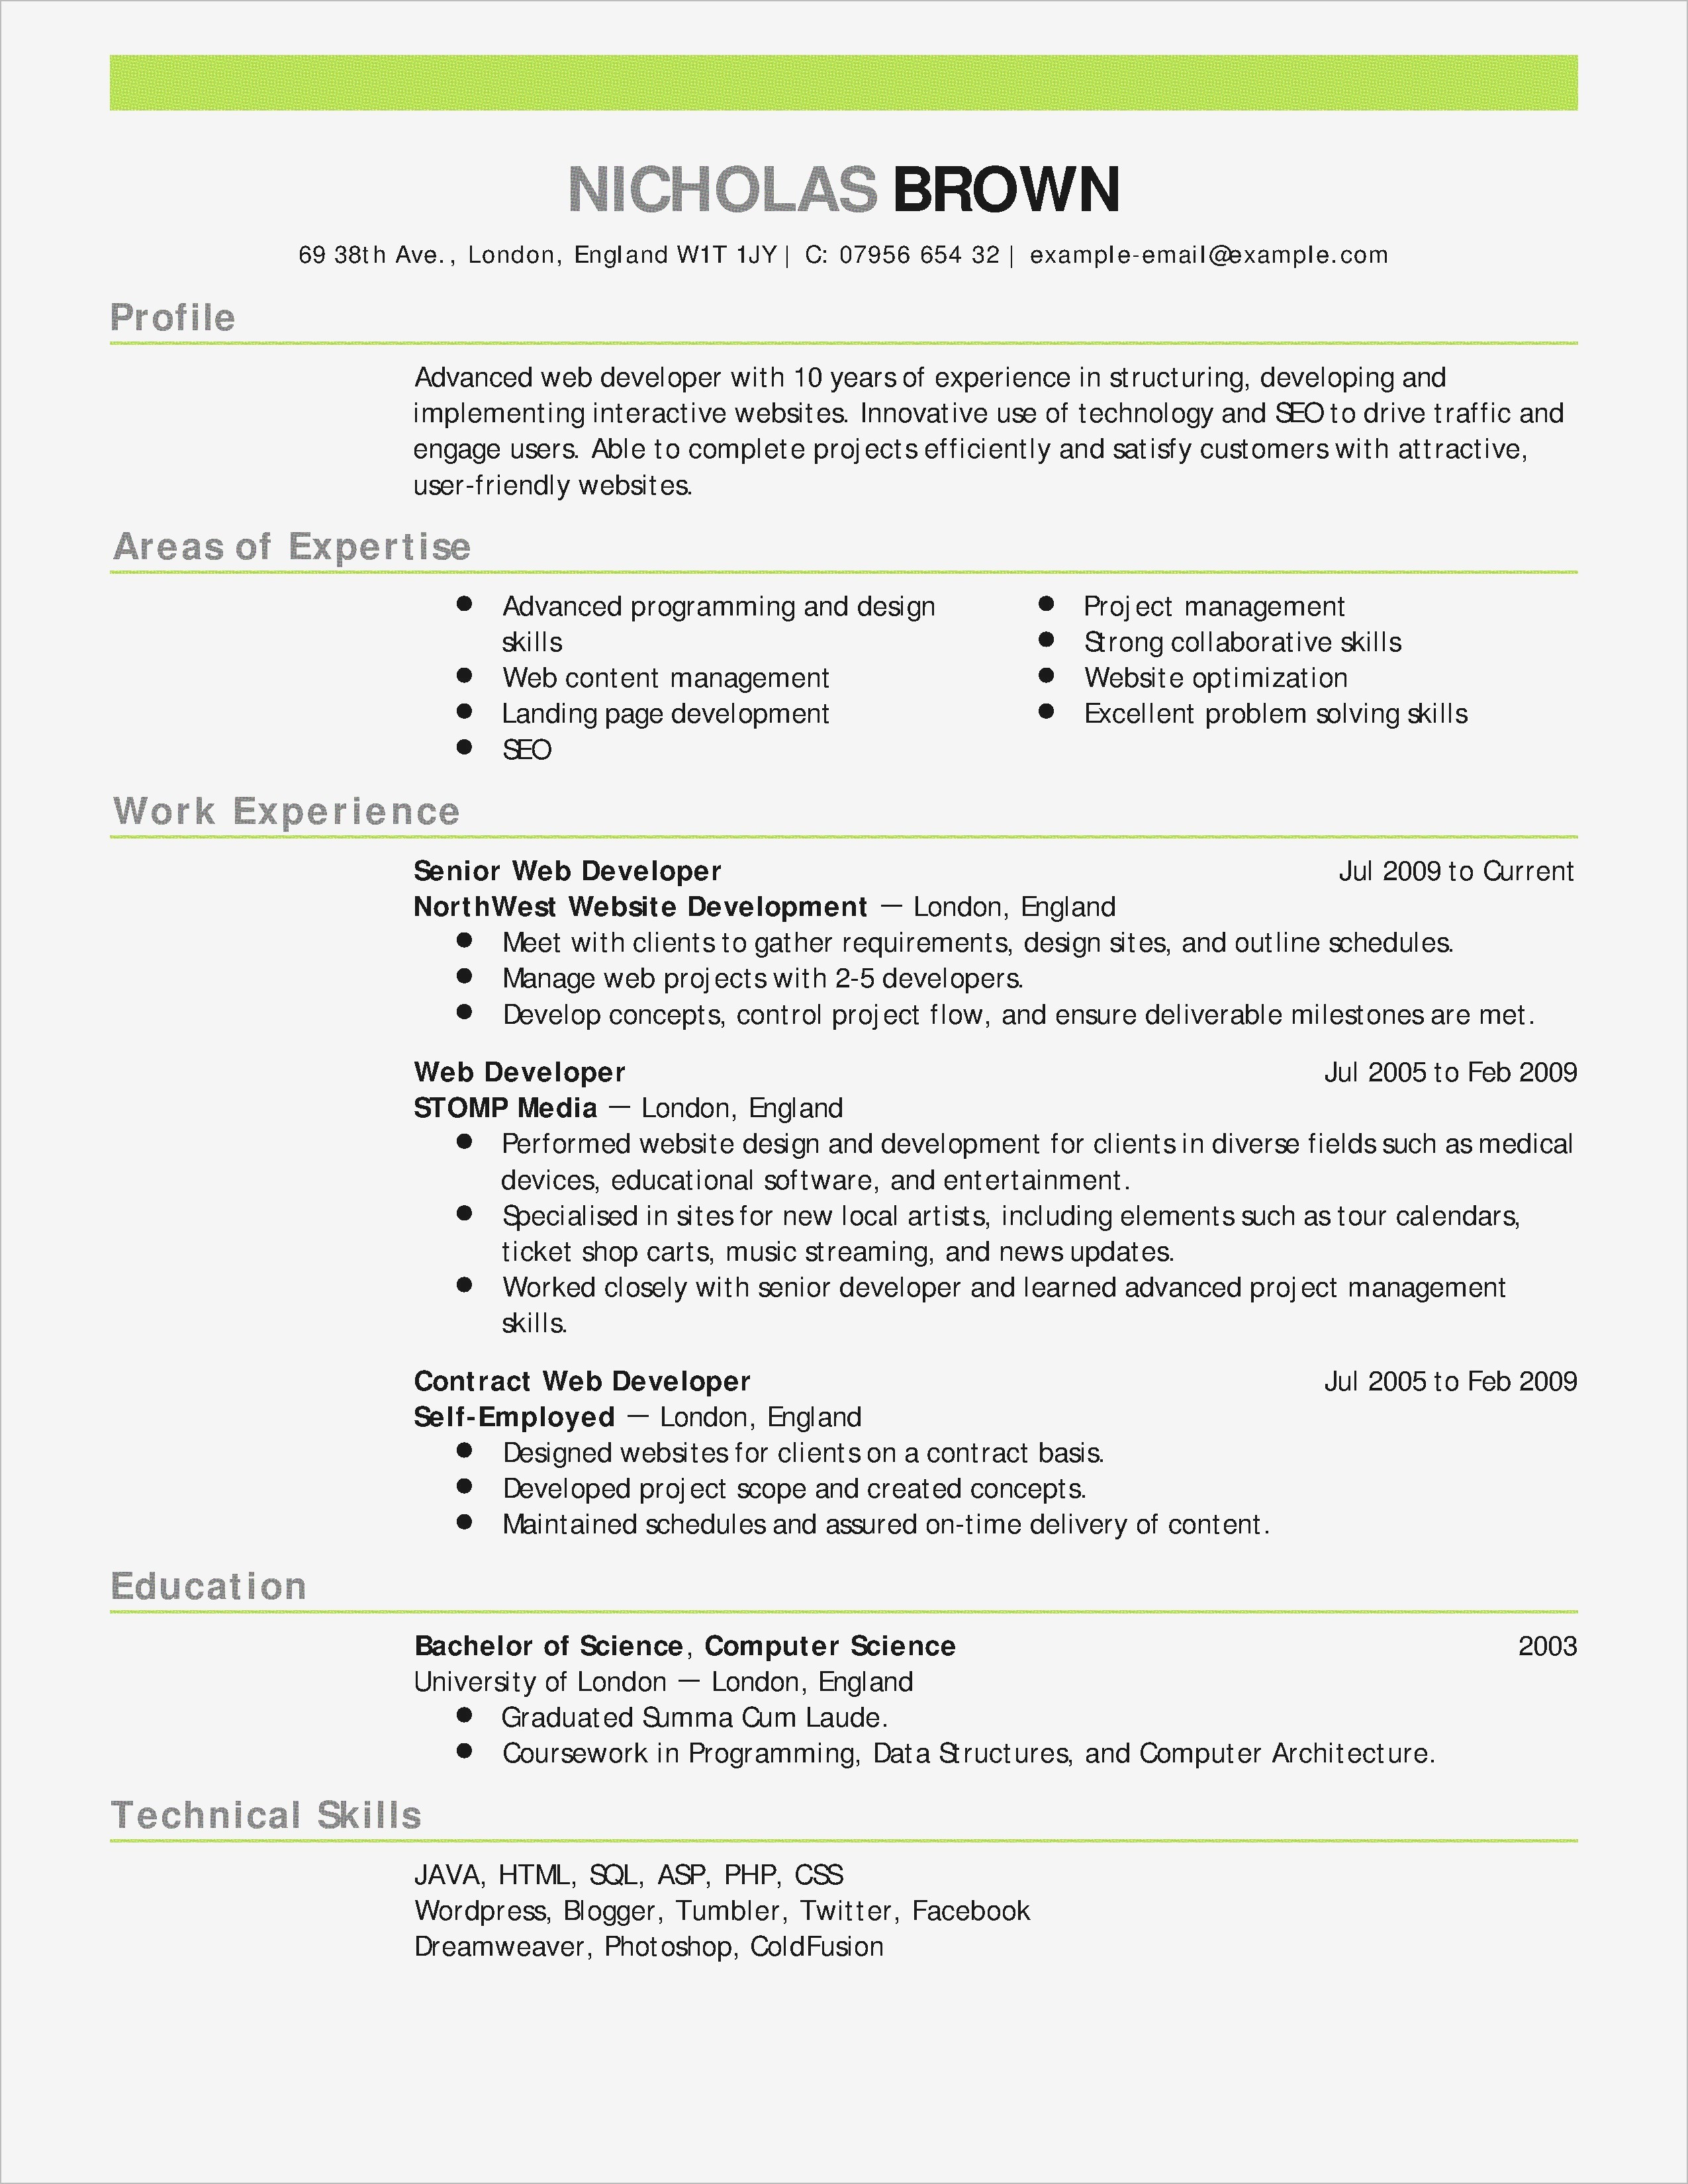 cover letter template computer science example-maintenance cover letter template maintenance experience resume reference elegant cover letter writing service awesome paralegal resume 0d 6g 2-t